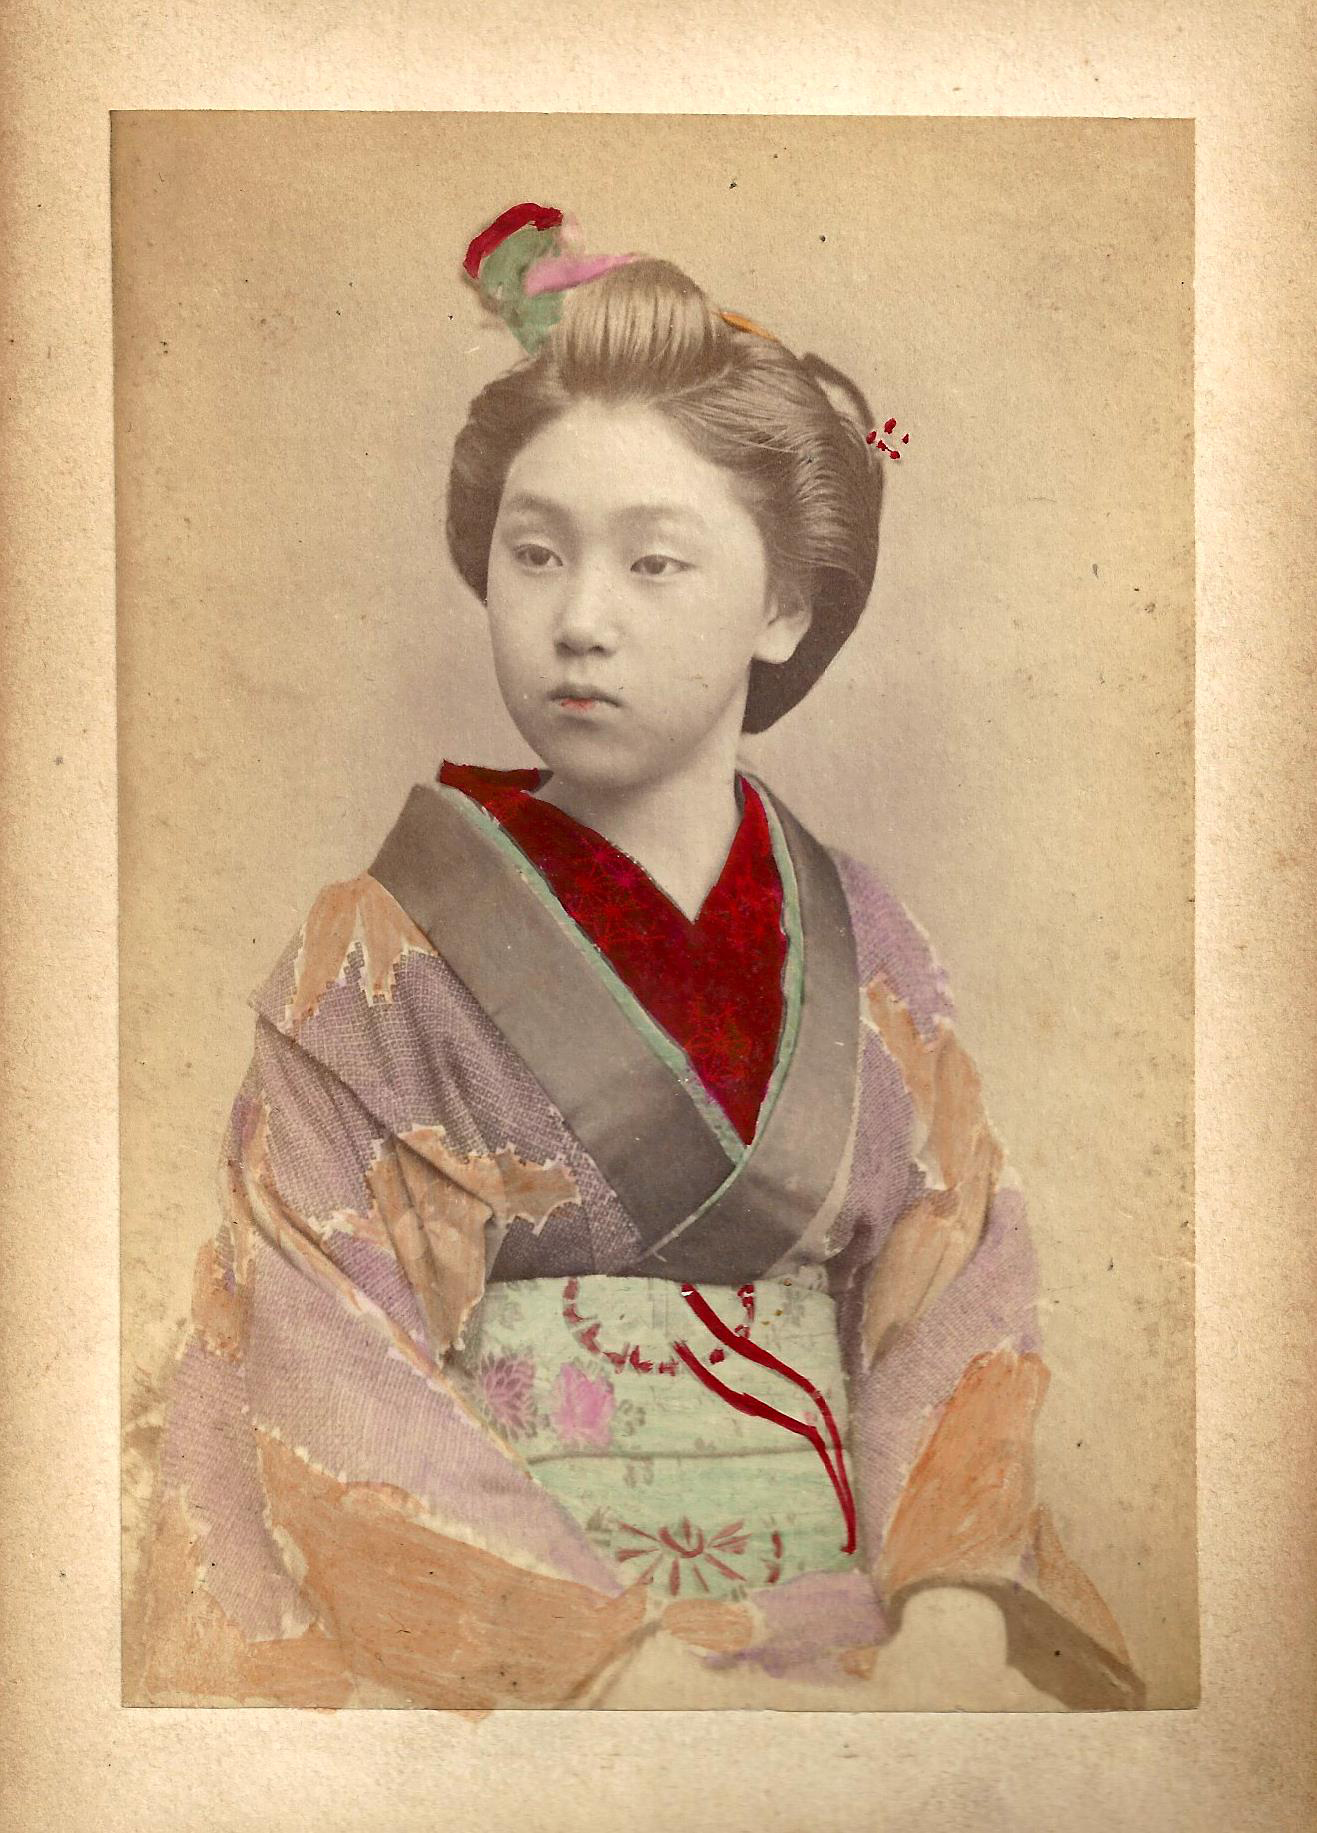 Giappone, 1860-1870